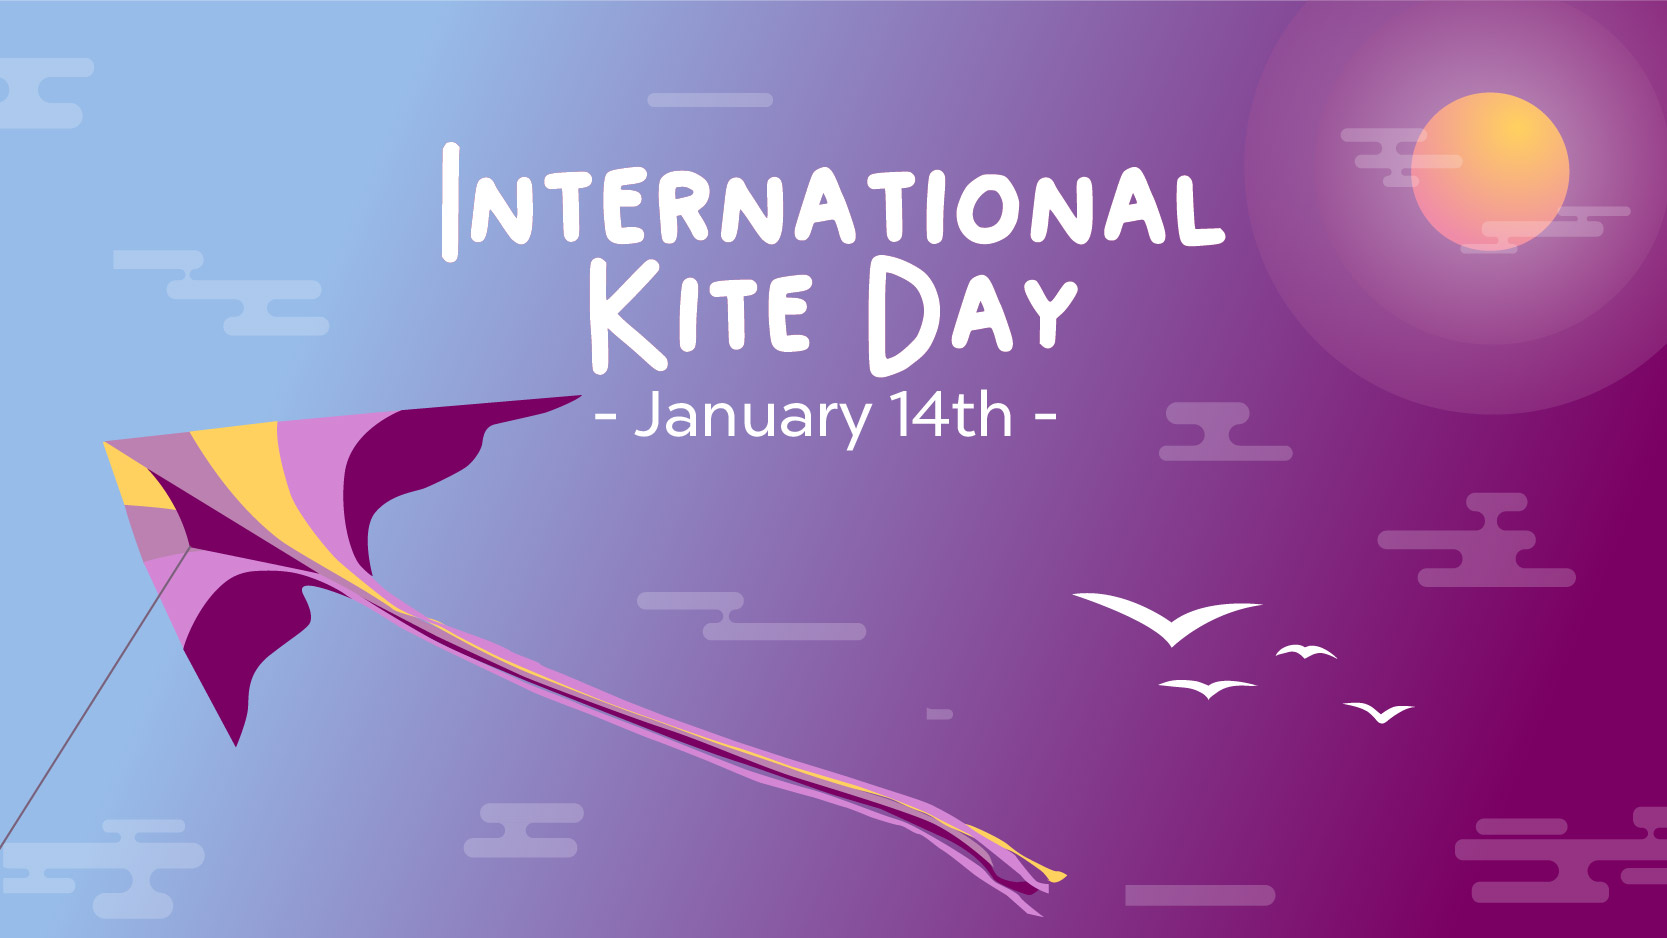 https://kite-agency.com/happy-international-kite-day-and-some-fun-facts-about-kites/